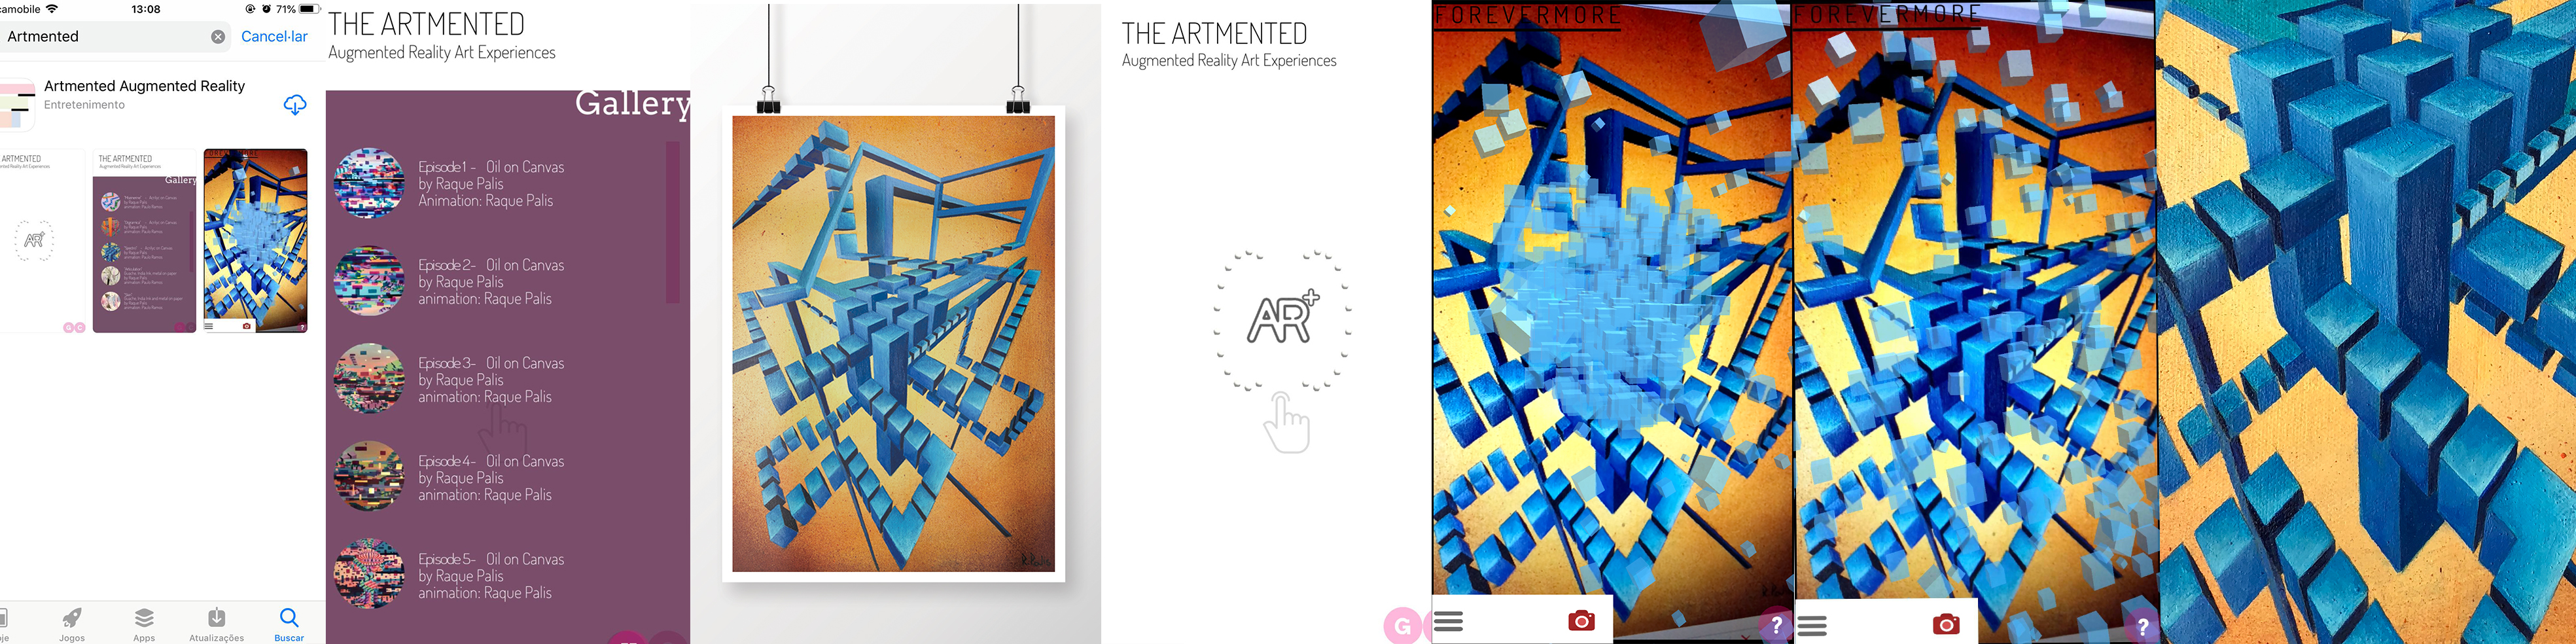 App Artmented Augmented Reality Art